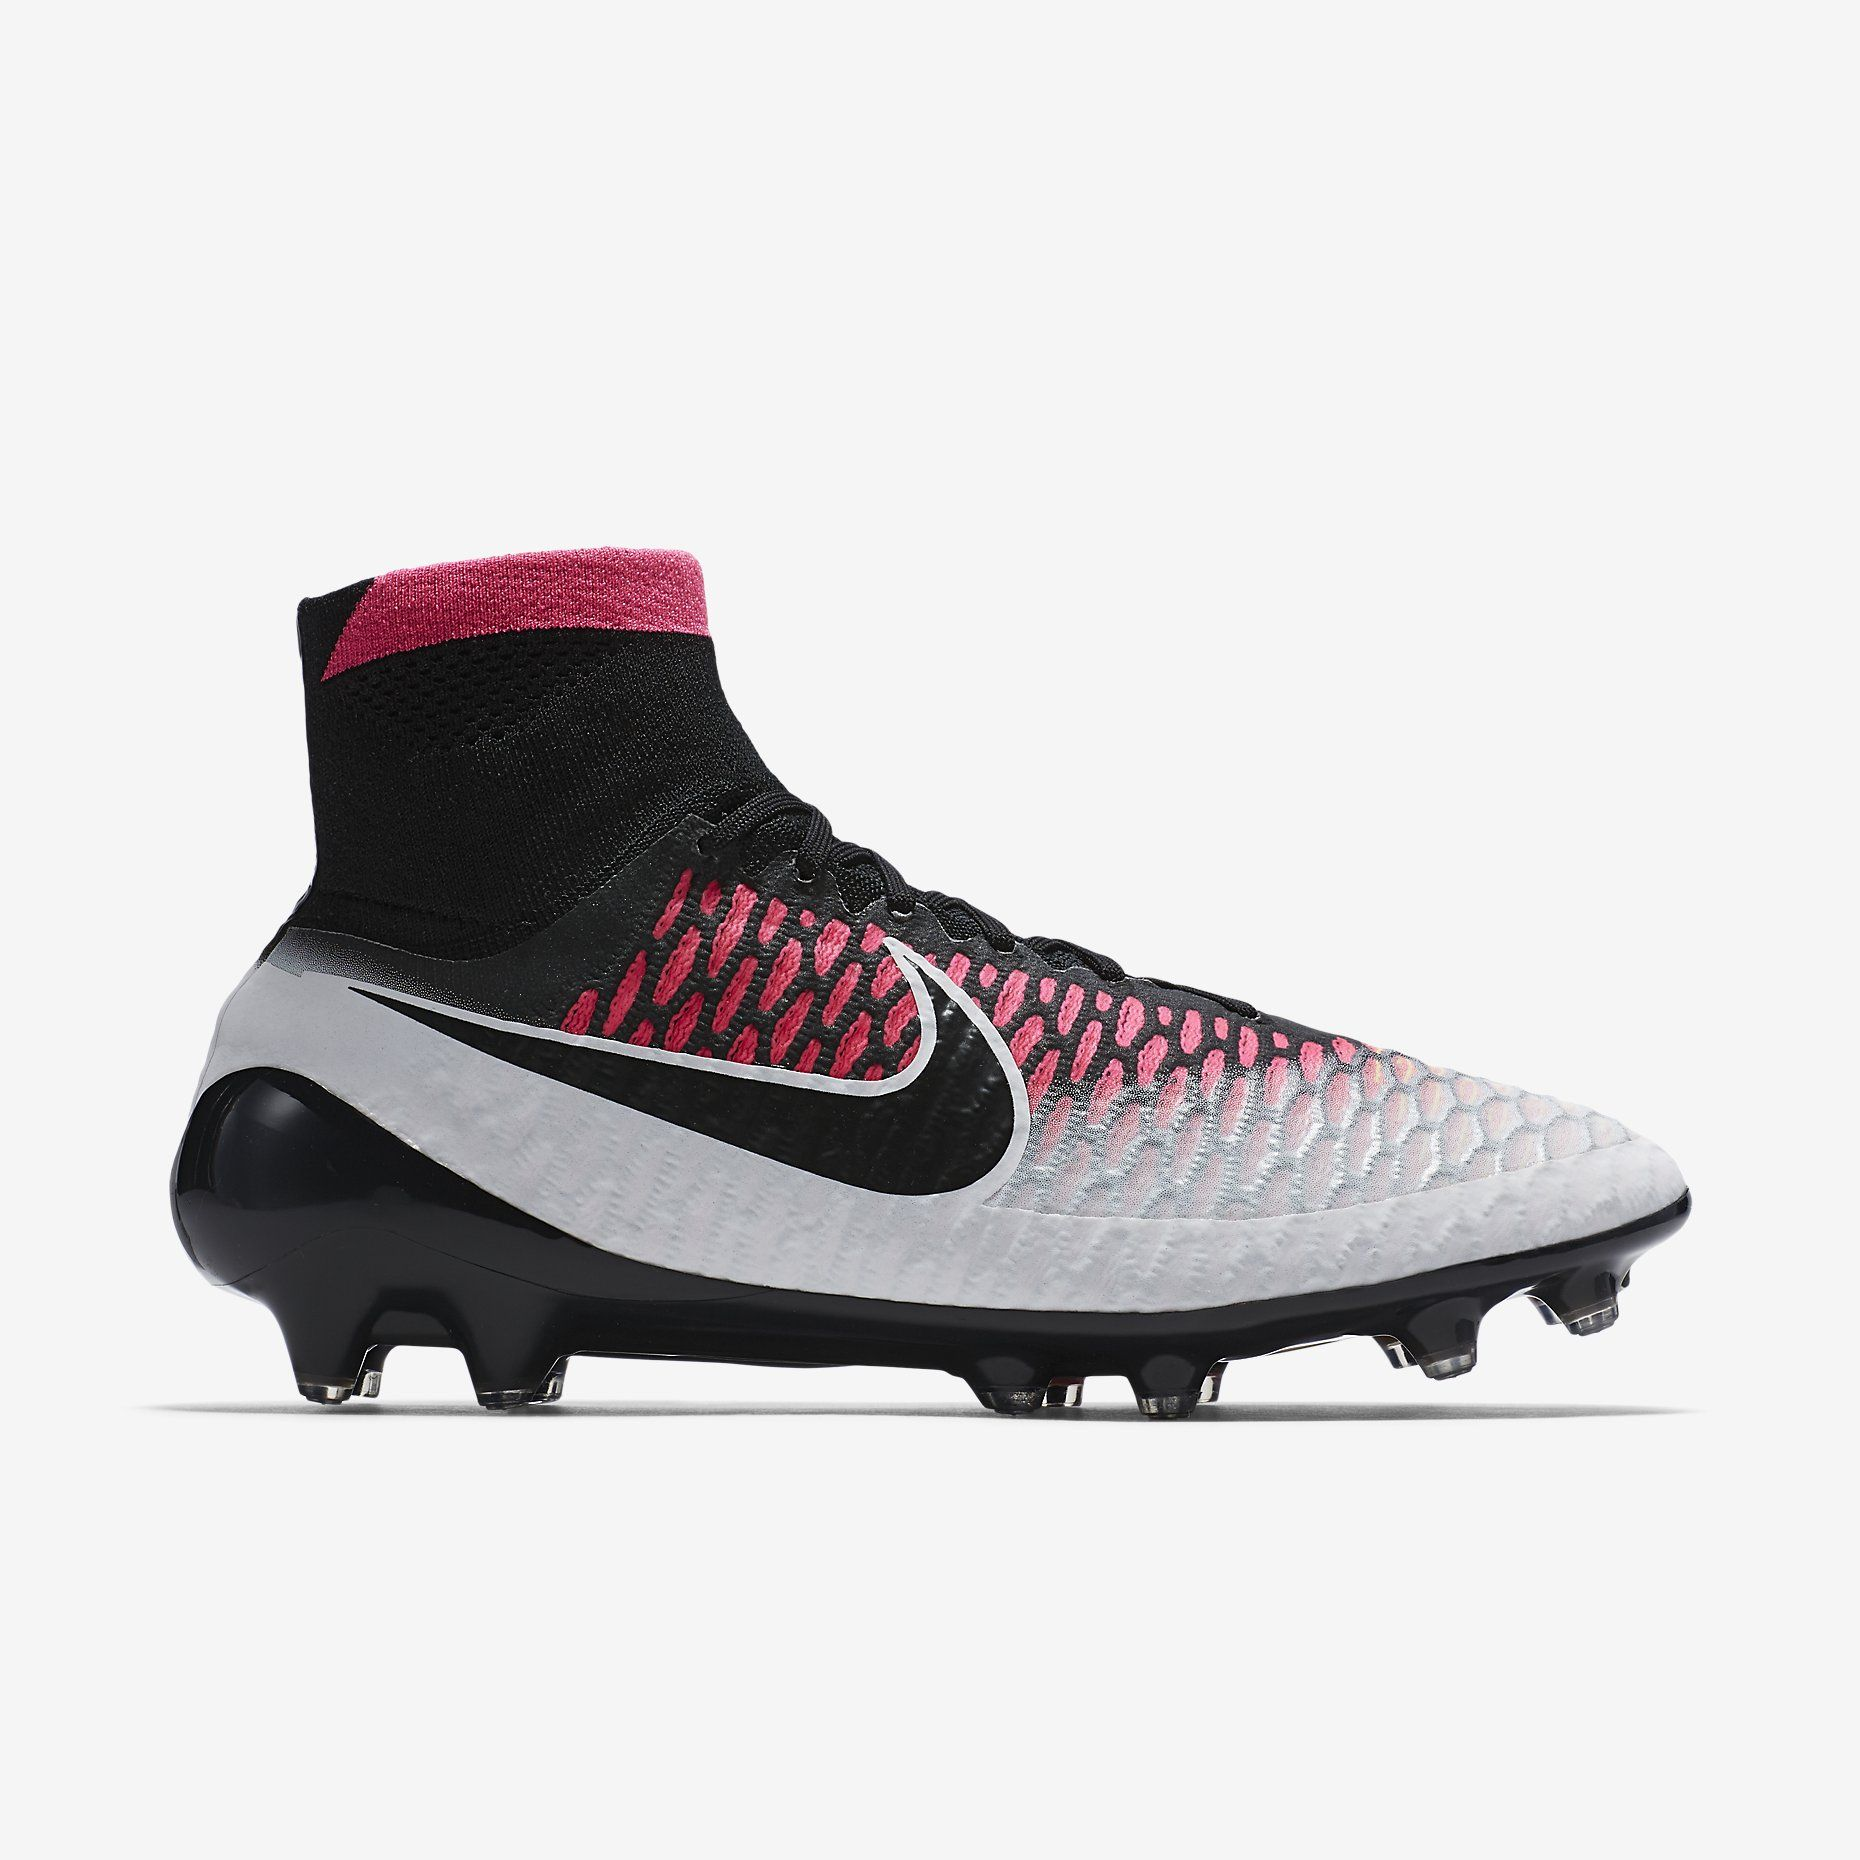 online store 46161 b9325 X Nike Magista Obra, Adidas, Blanco White, Boutique, Black Pink, Football